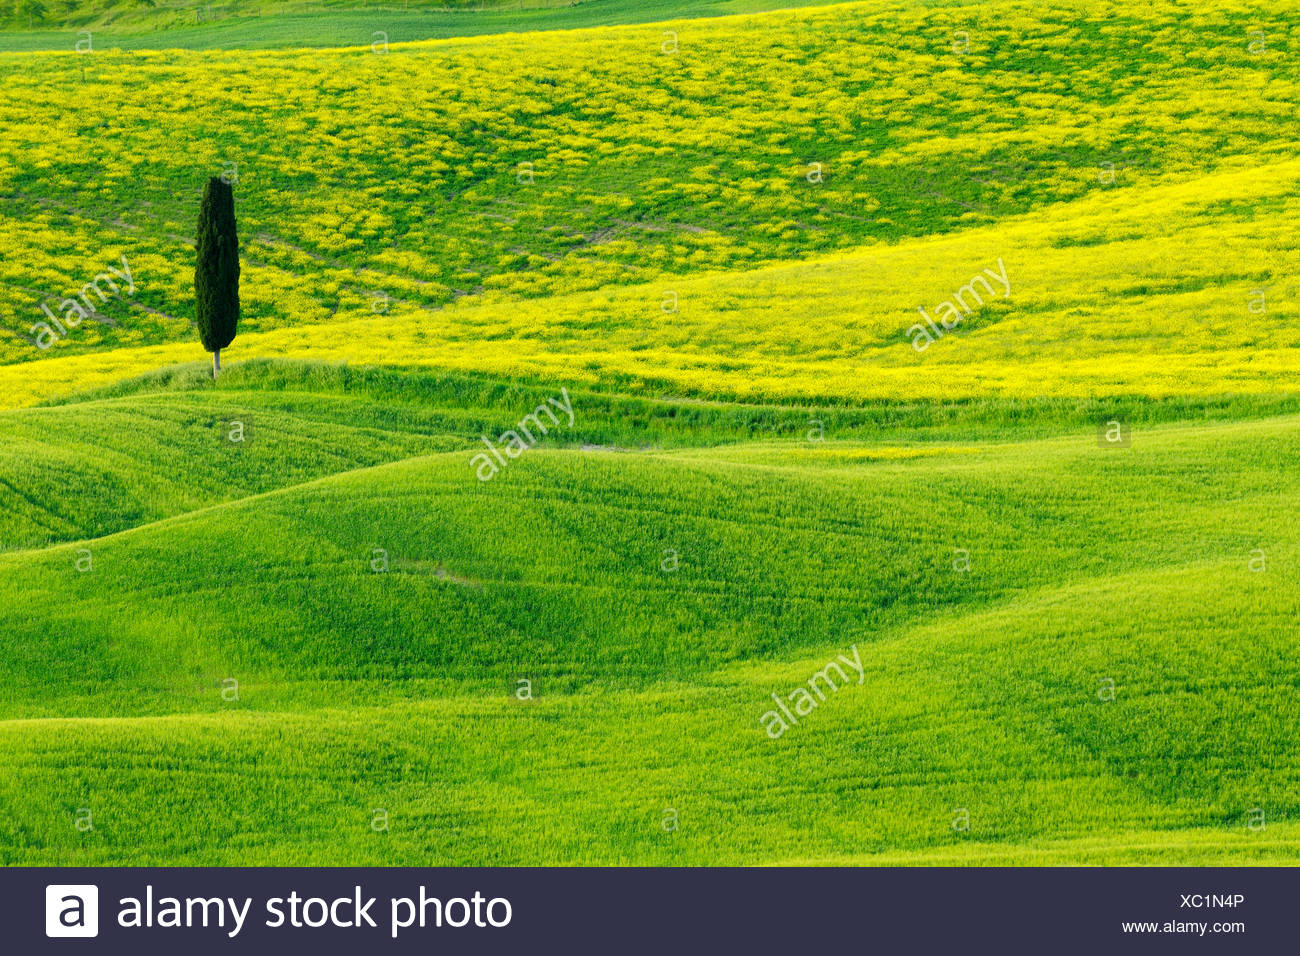 Italian cypress (Cupressus sempervirens), Green and Hilly Farmland with Cypress, Val d' Orcia, San Quirico d' Orcia, Italy, Tuscany - Stock Image